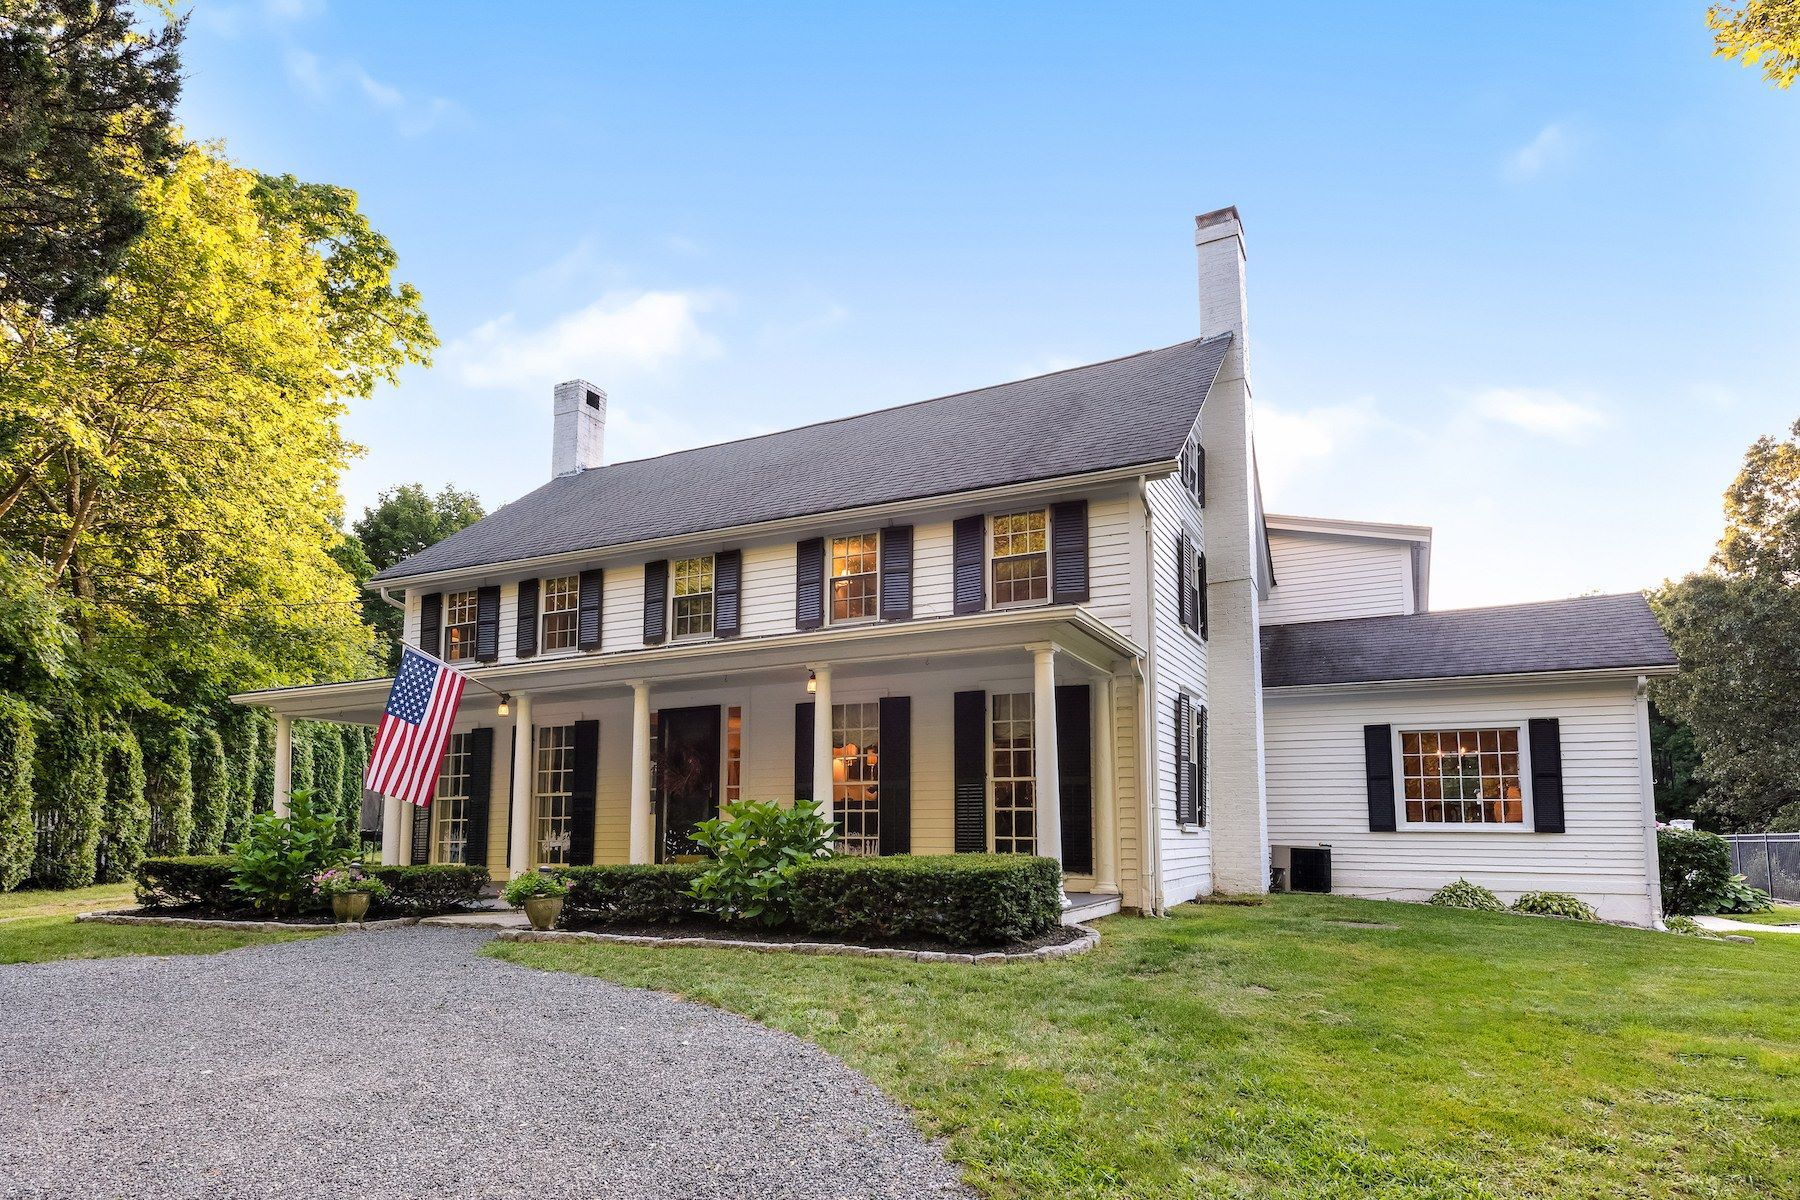 Single Family Homes for Sale at 809 Pound Hill Road, North Smithfield, RI 809 Pound Hill Road North Smithfield, Rhode Island 02896 United States